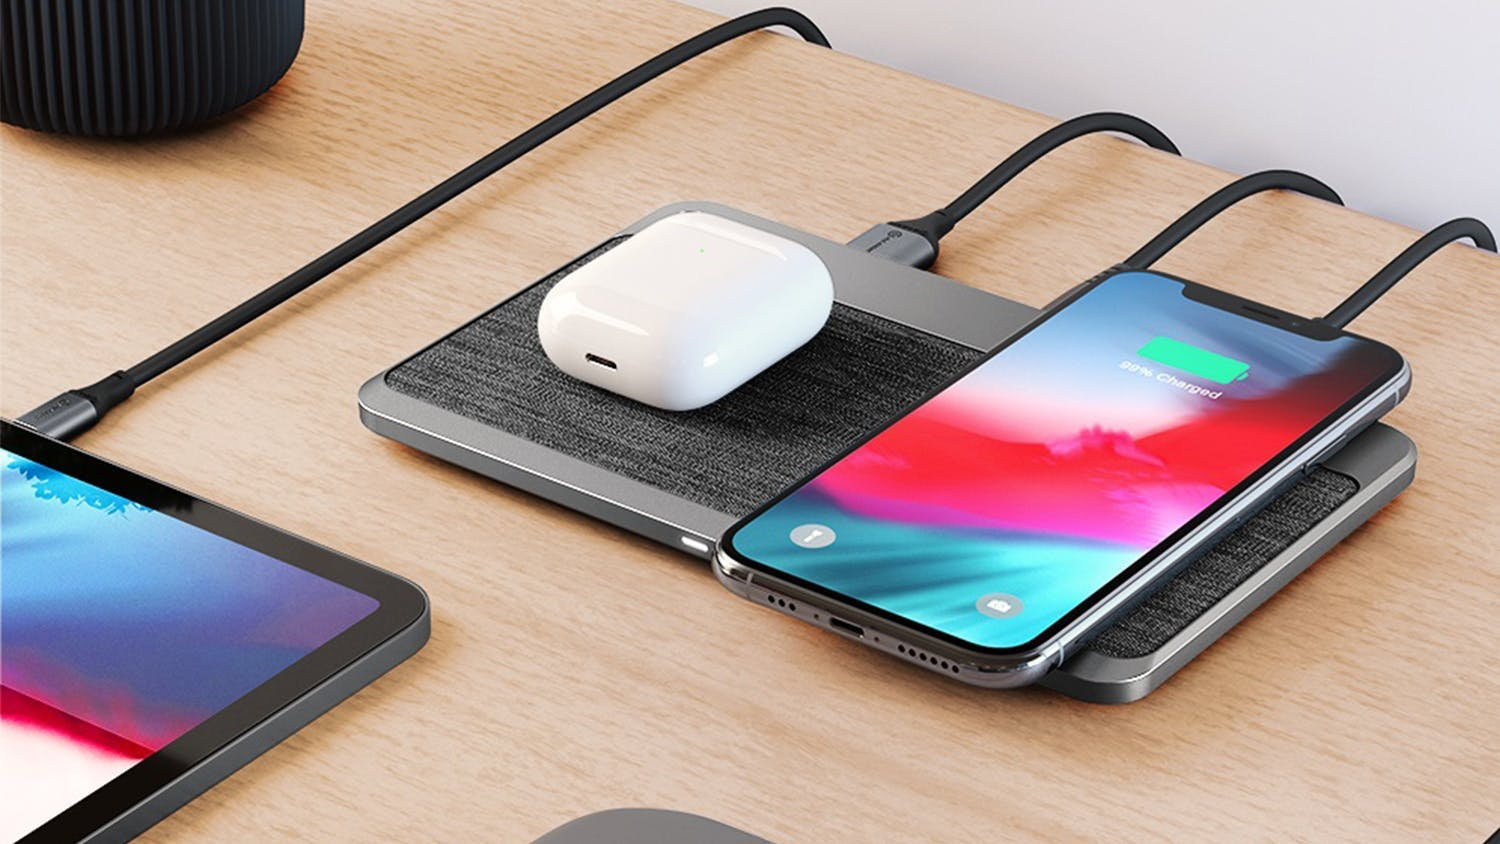 Alogic Power Hub Dual Wireless Charging Station